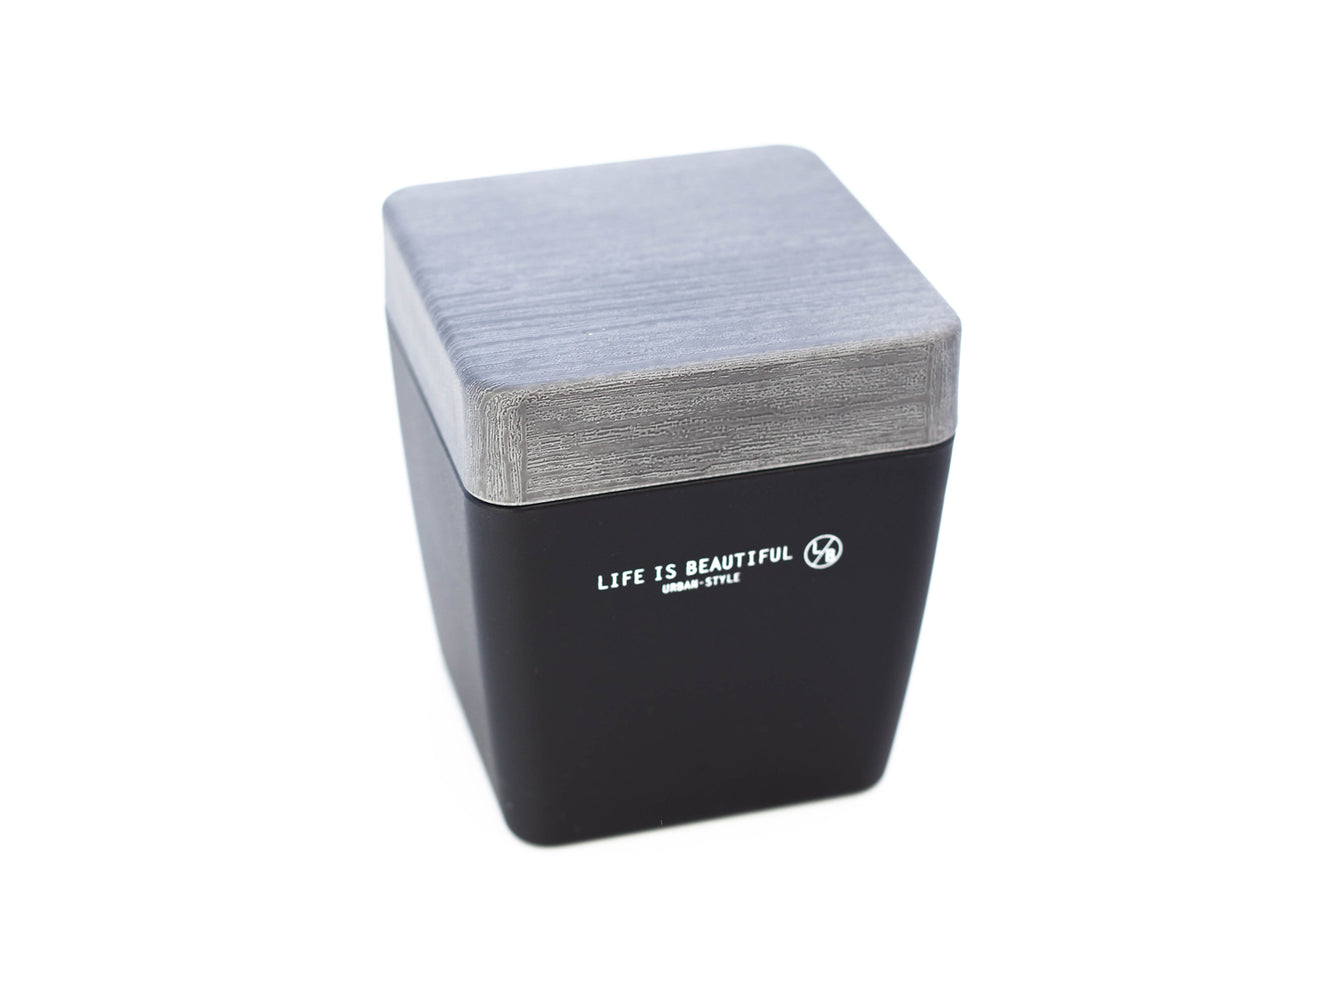 Life is Beautiful Lunch Tall | Gray by Showa - Bento&con the Bento Boxes specialist from Kyoto